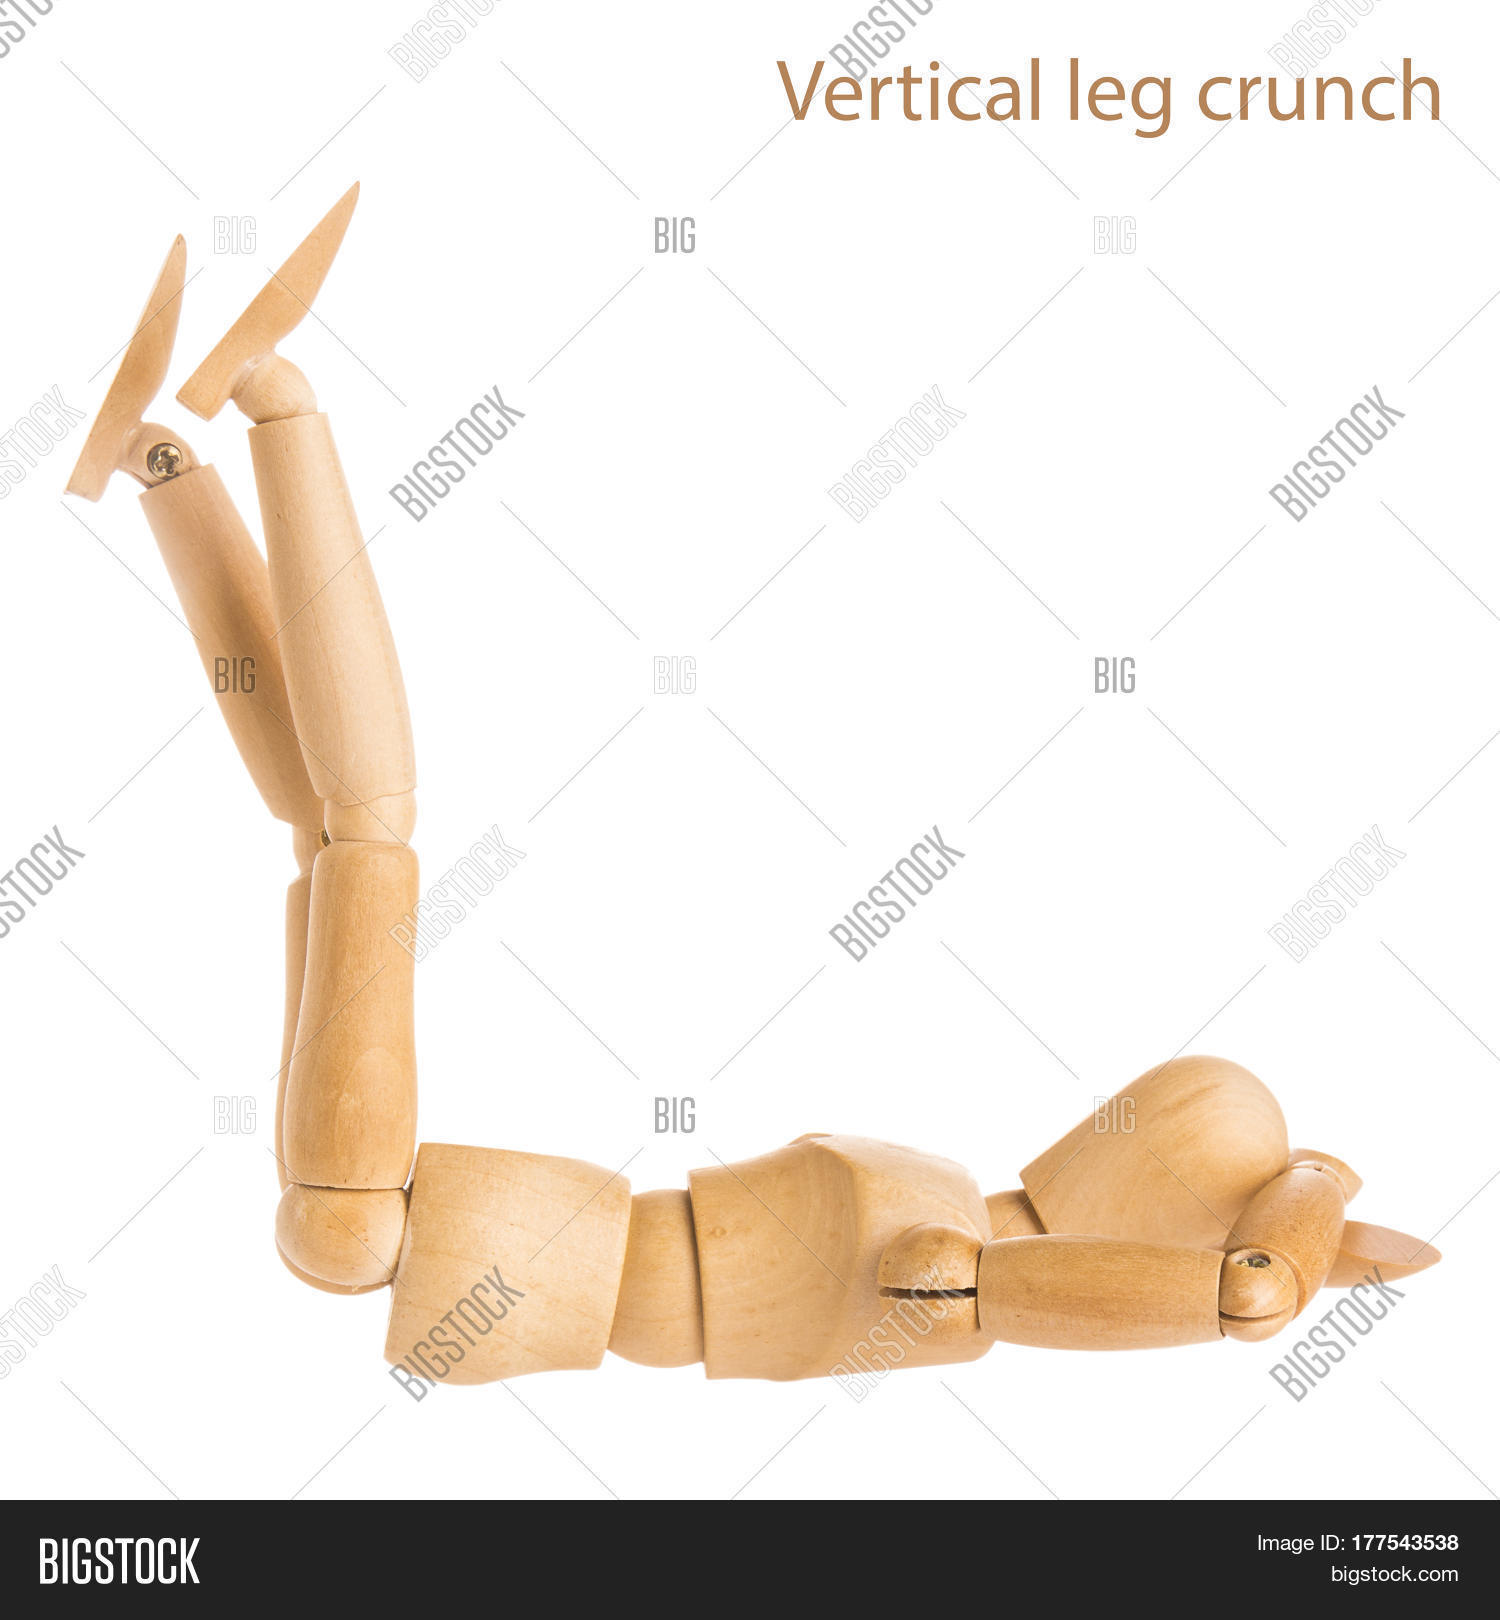 Vertical Leg Crunch Pose Stock Photo & Stock Images | Bigstock